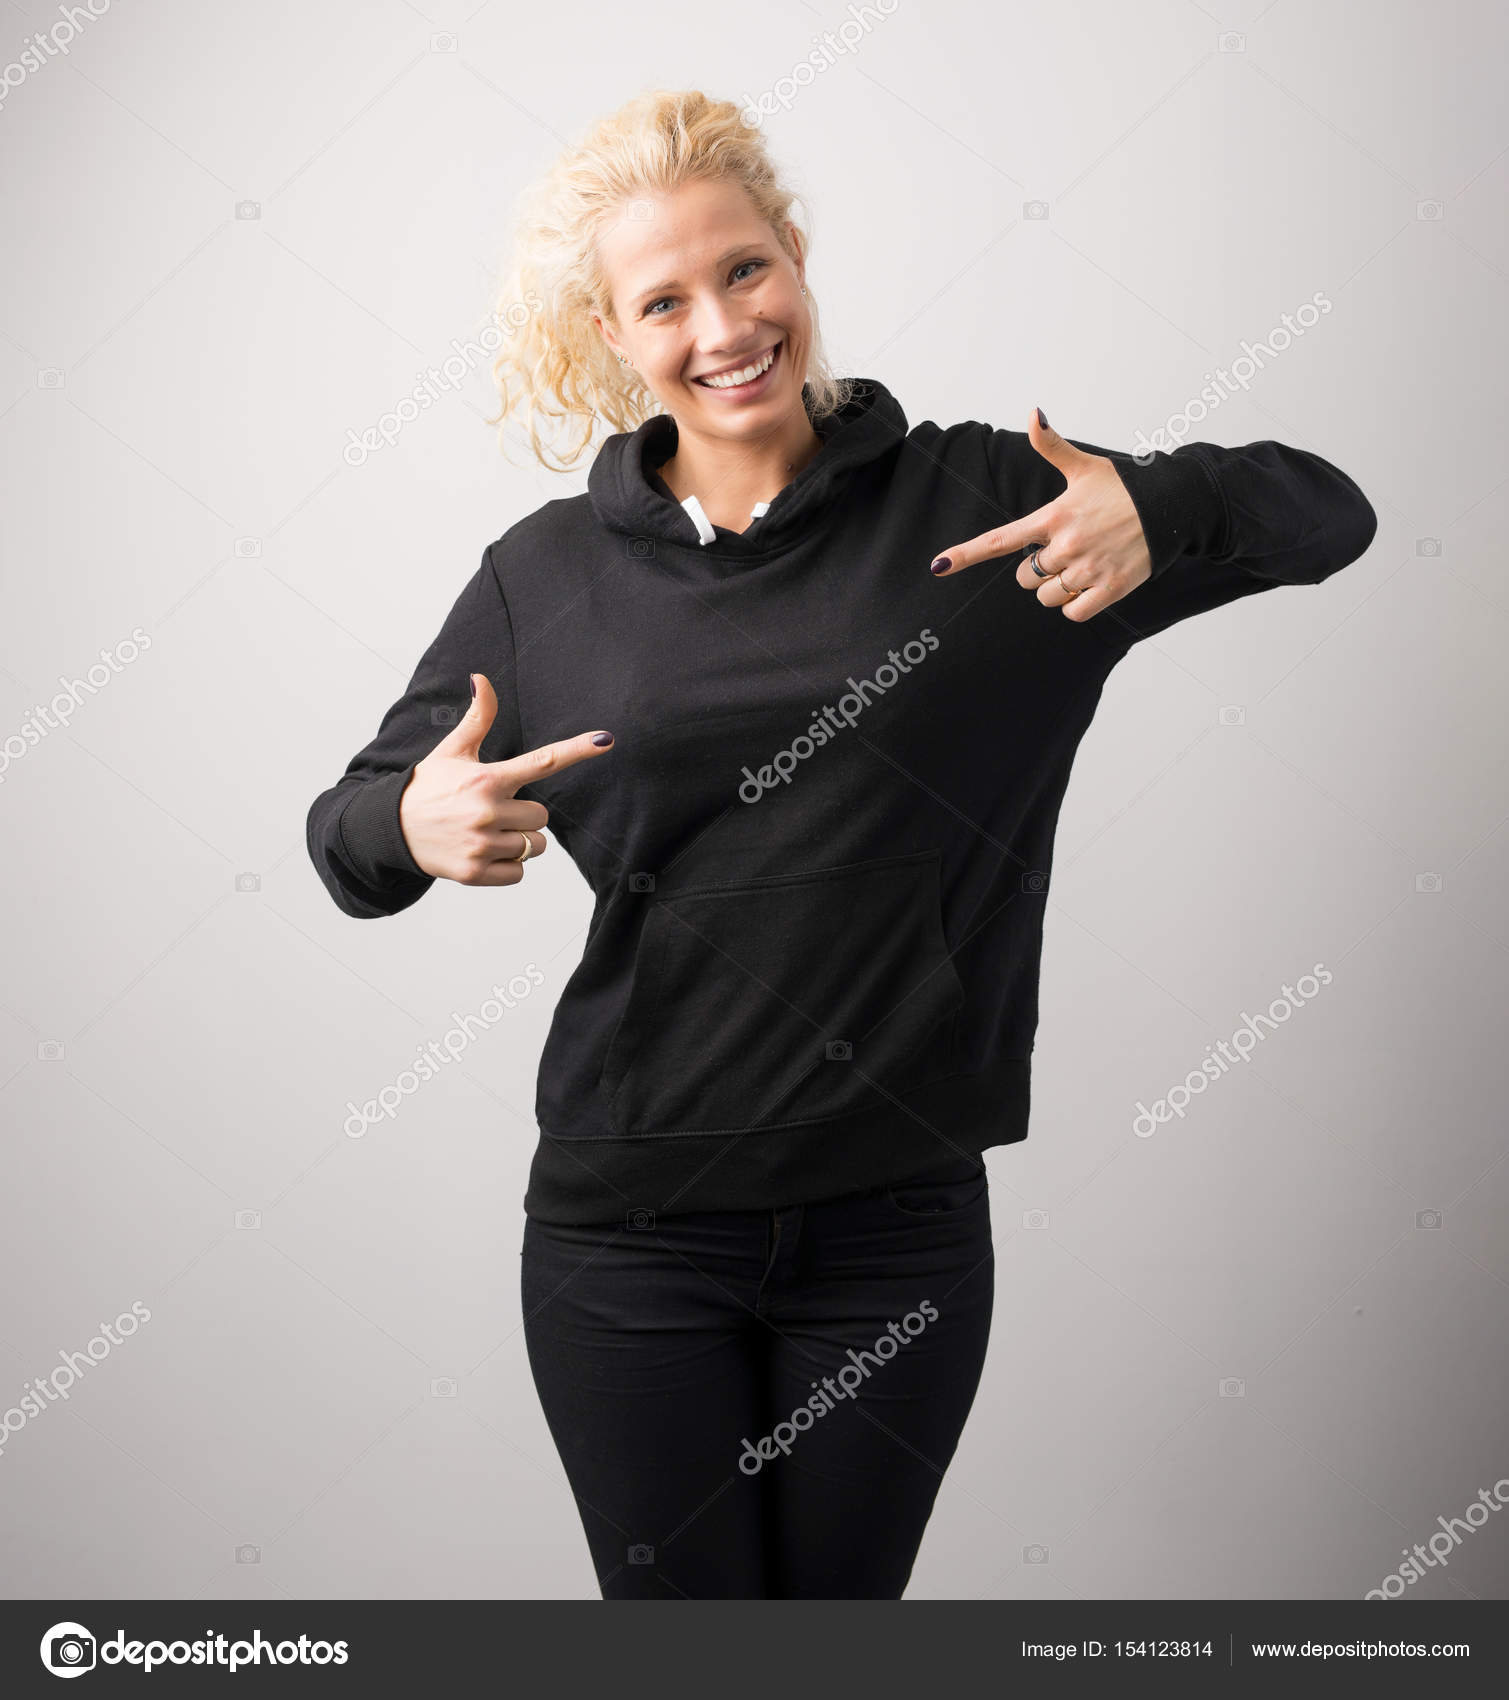 woman in black hoodie template for your own design stock photo